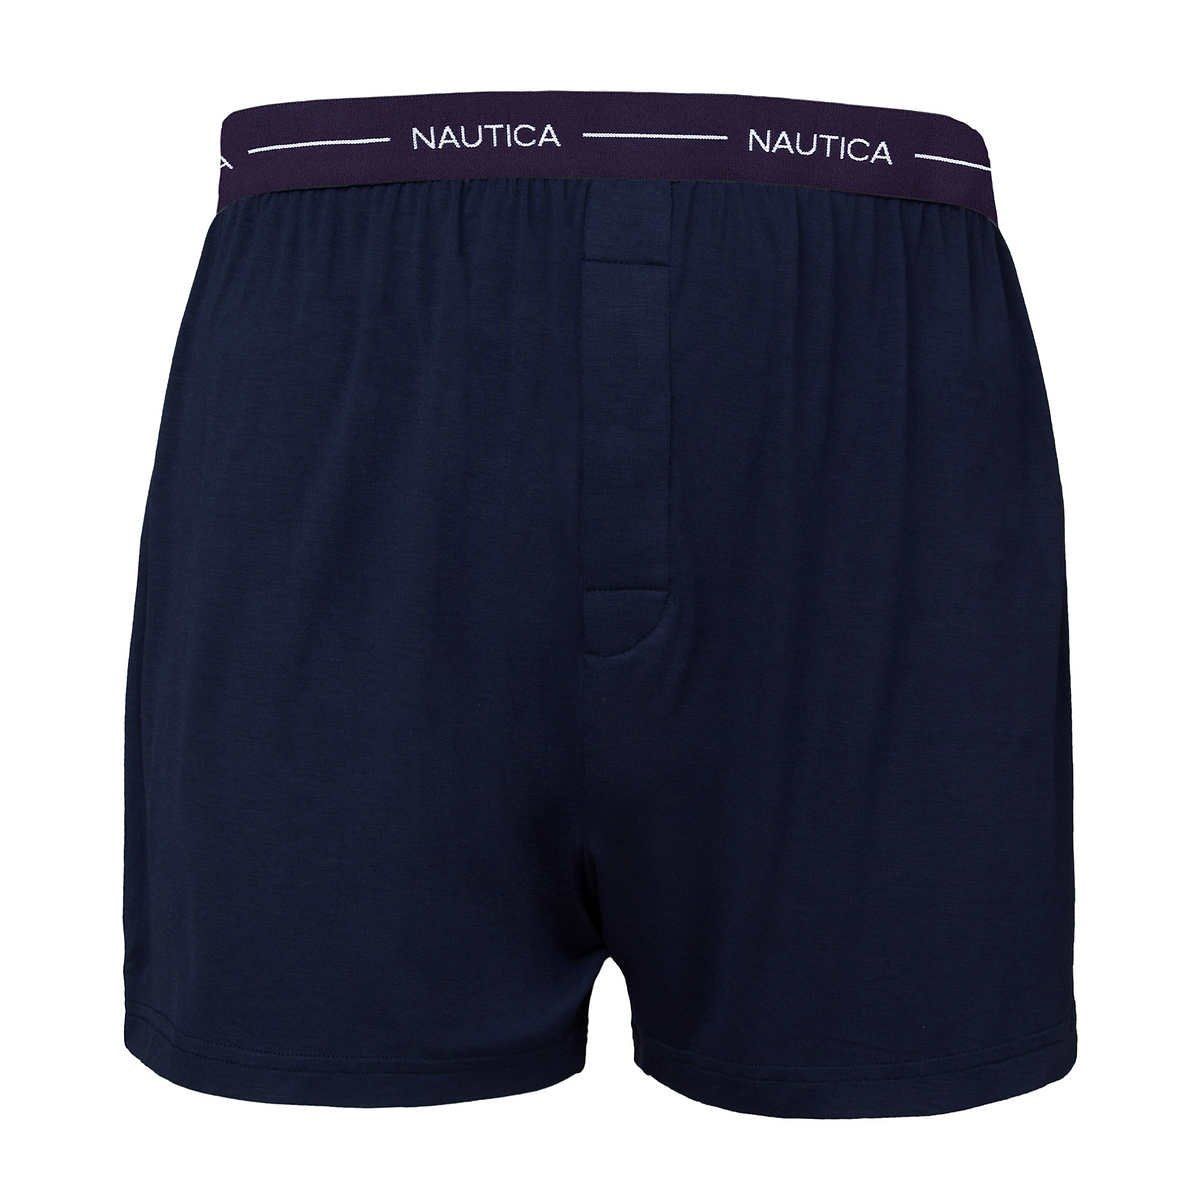 3 Pack Nautica Mens Boxer Modal Cotton Fit Boxer with Functional Fly Tagless